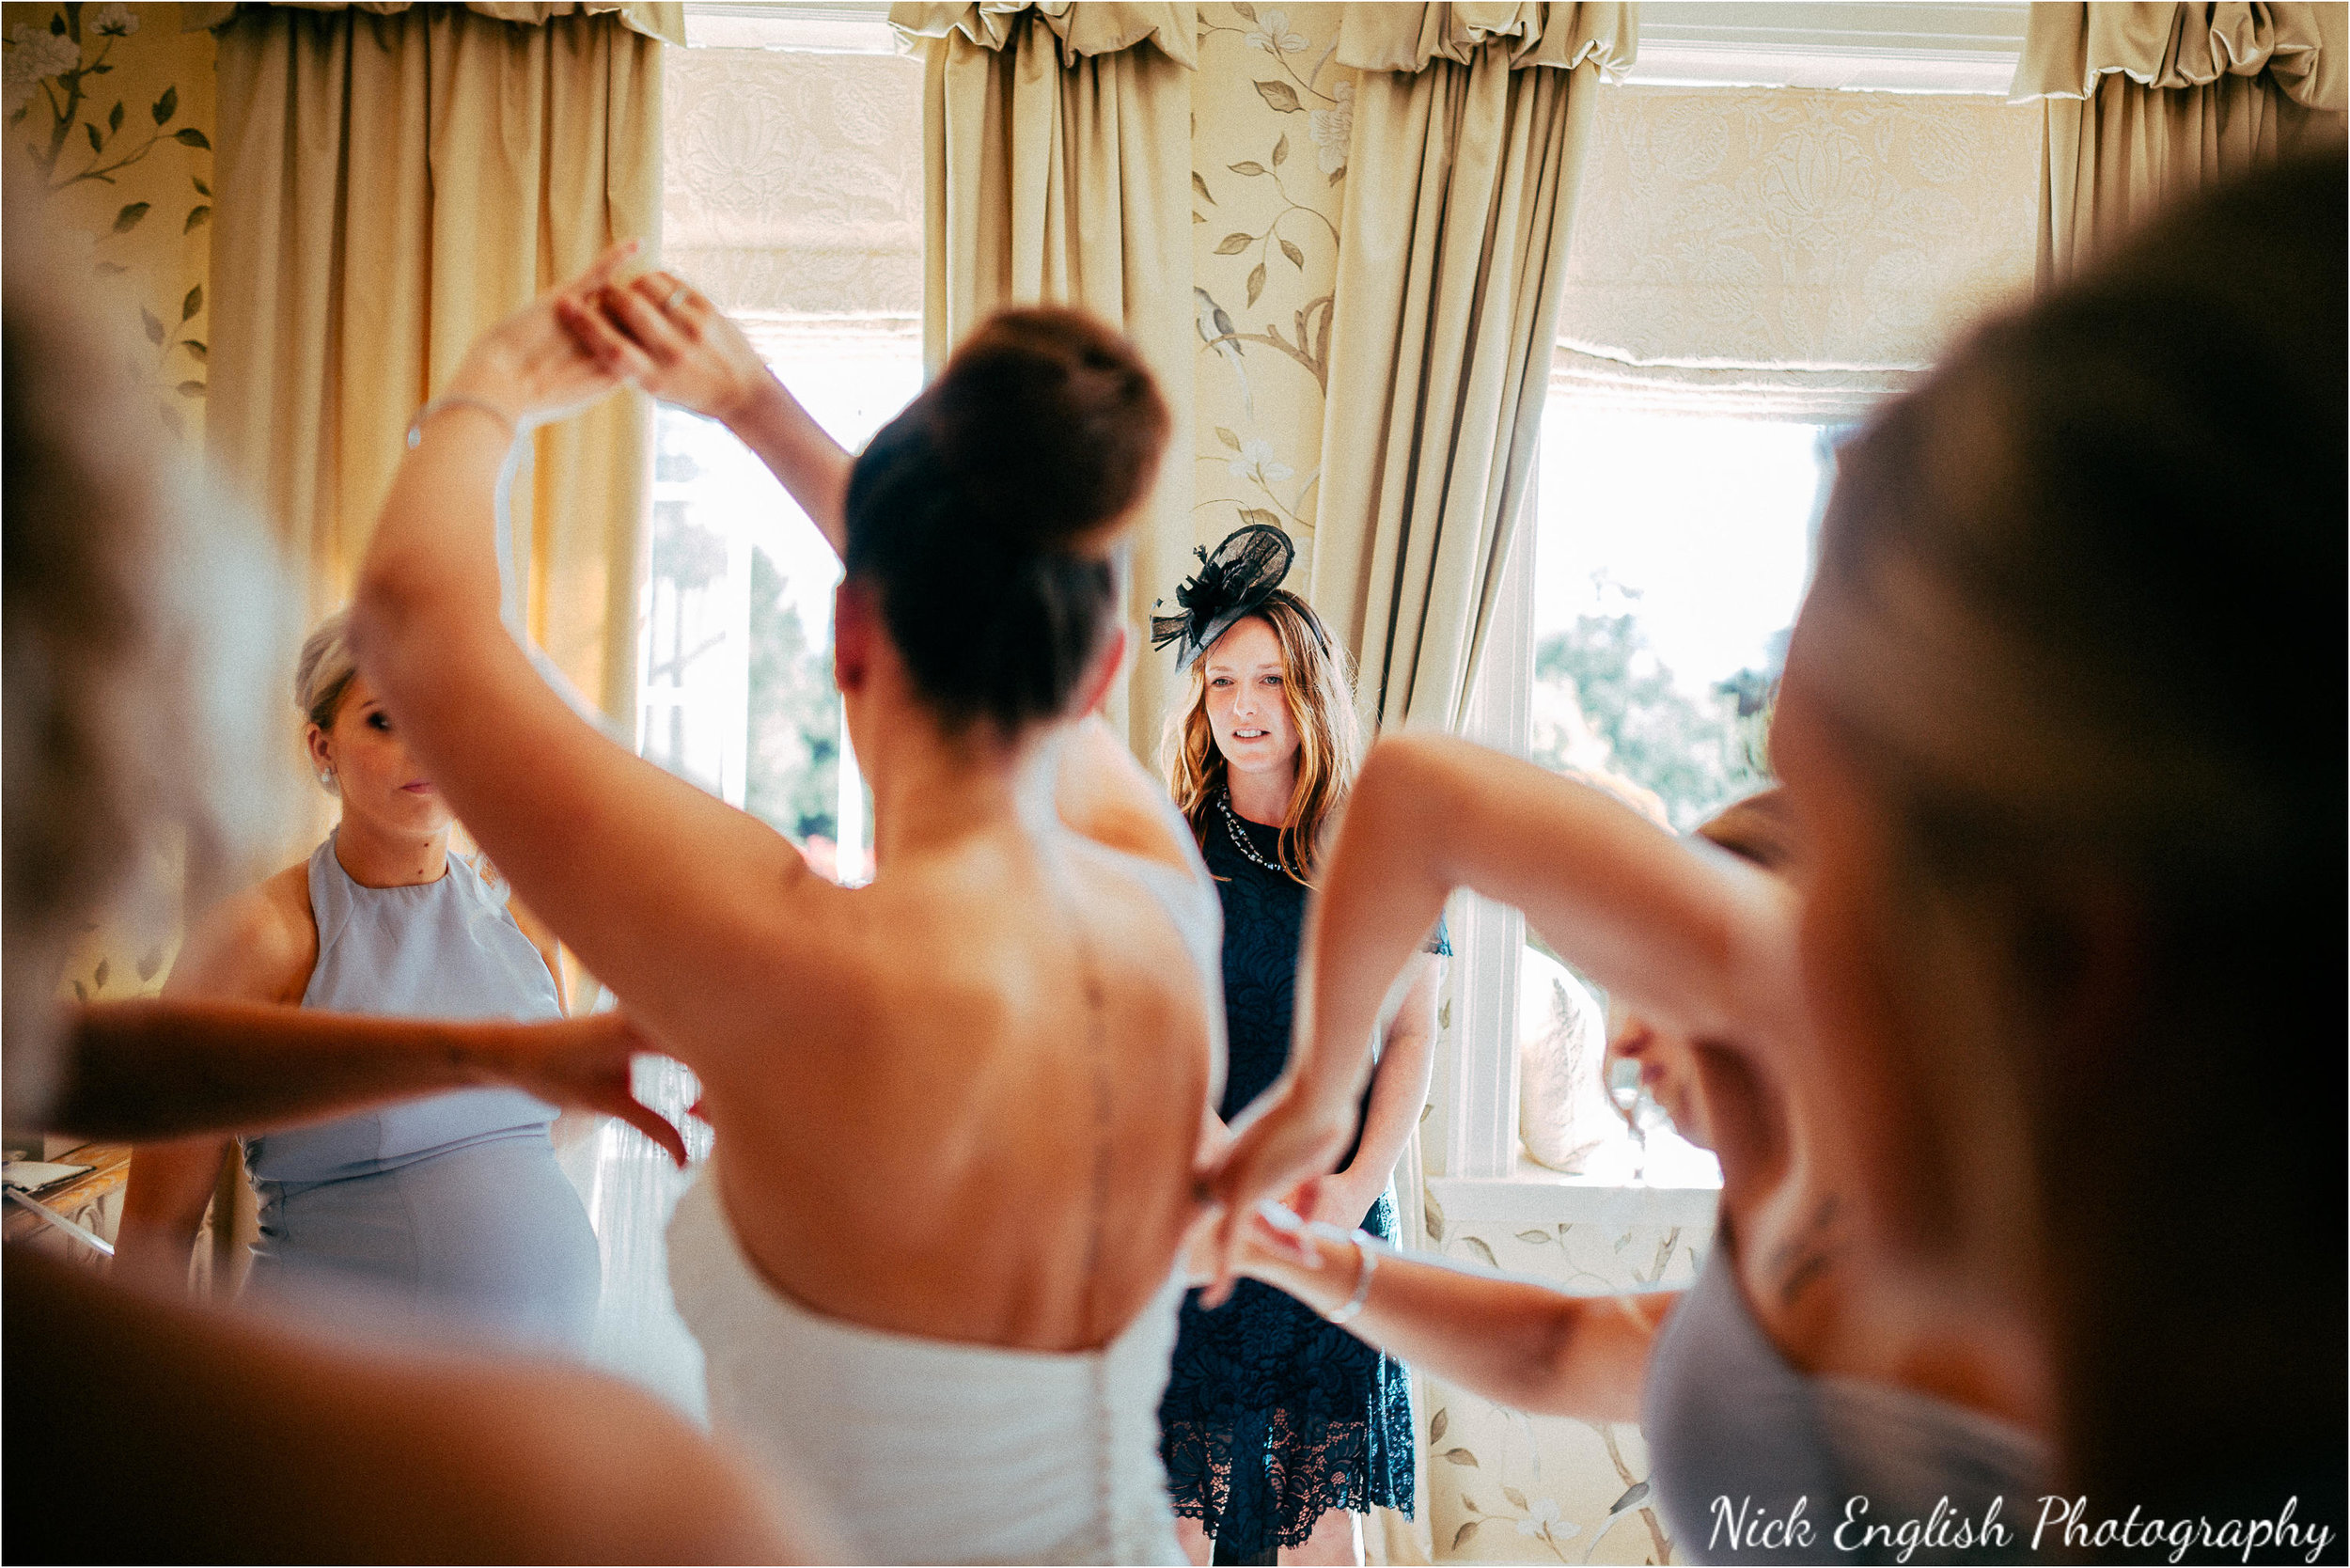 Eaves_Hall_Wedding_Photographs_Nick_English_Photography-80.jpg